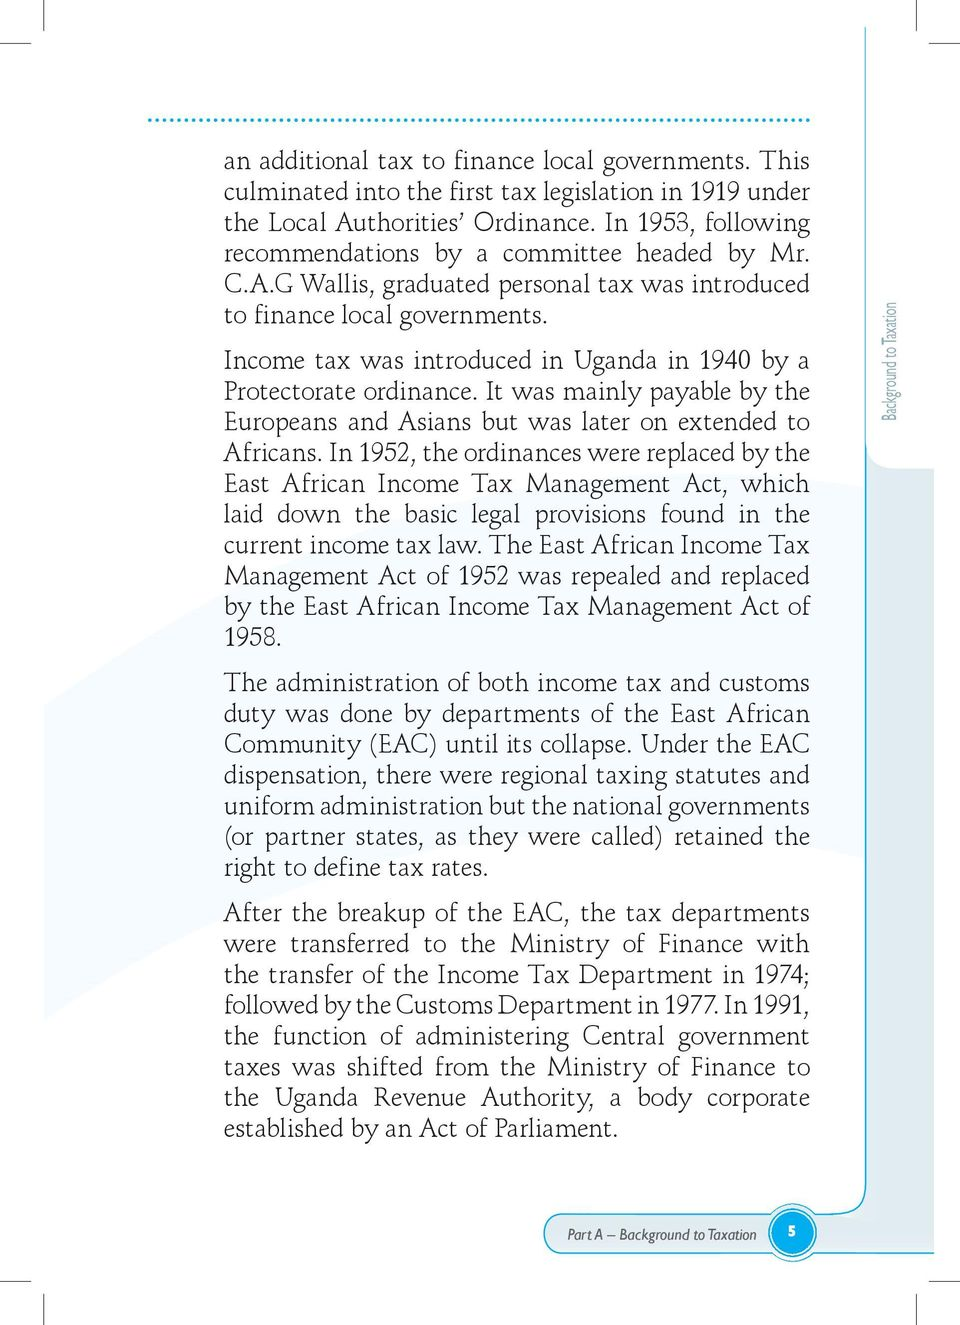 Income tax was introduced in Uganda in 1940 by a Protectorate ordinance. It was mainly payable by the Europeans and Asians but was later on extended to Africans.